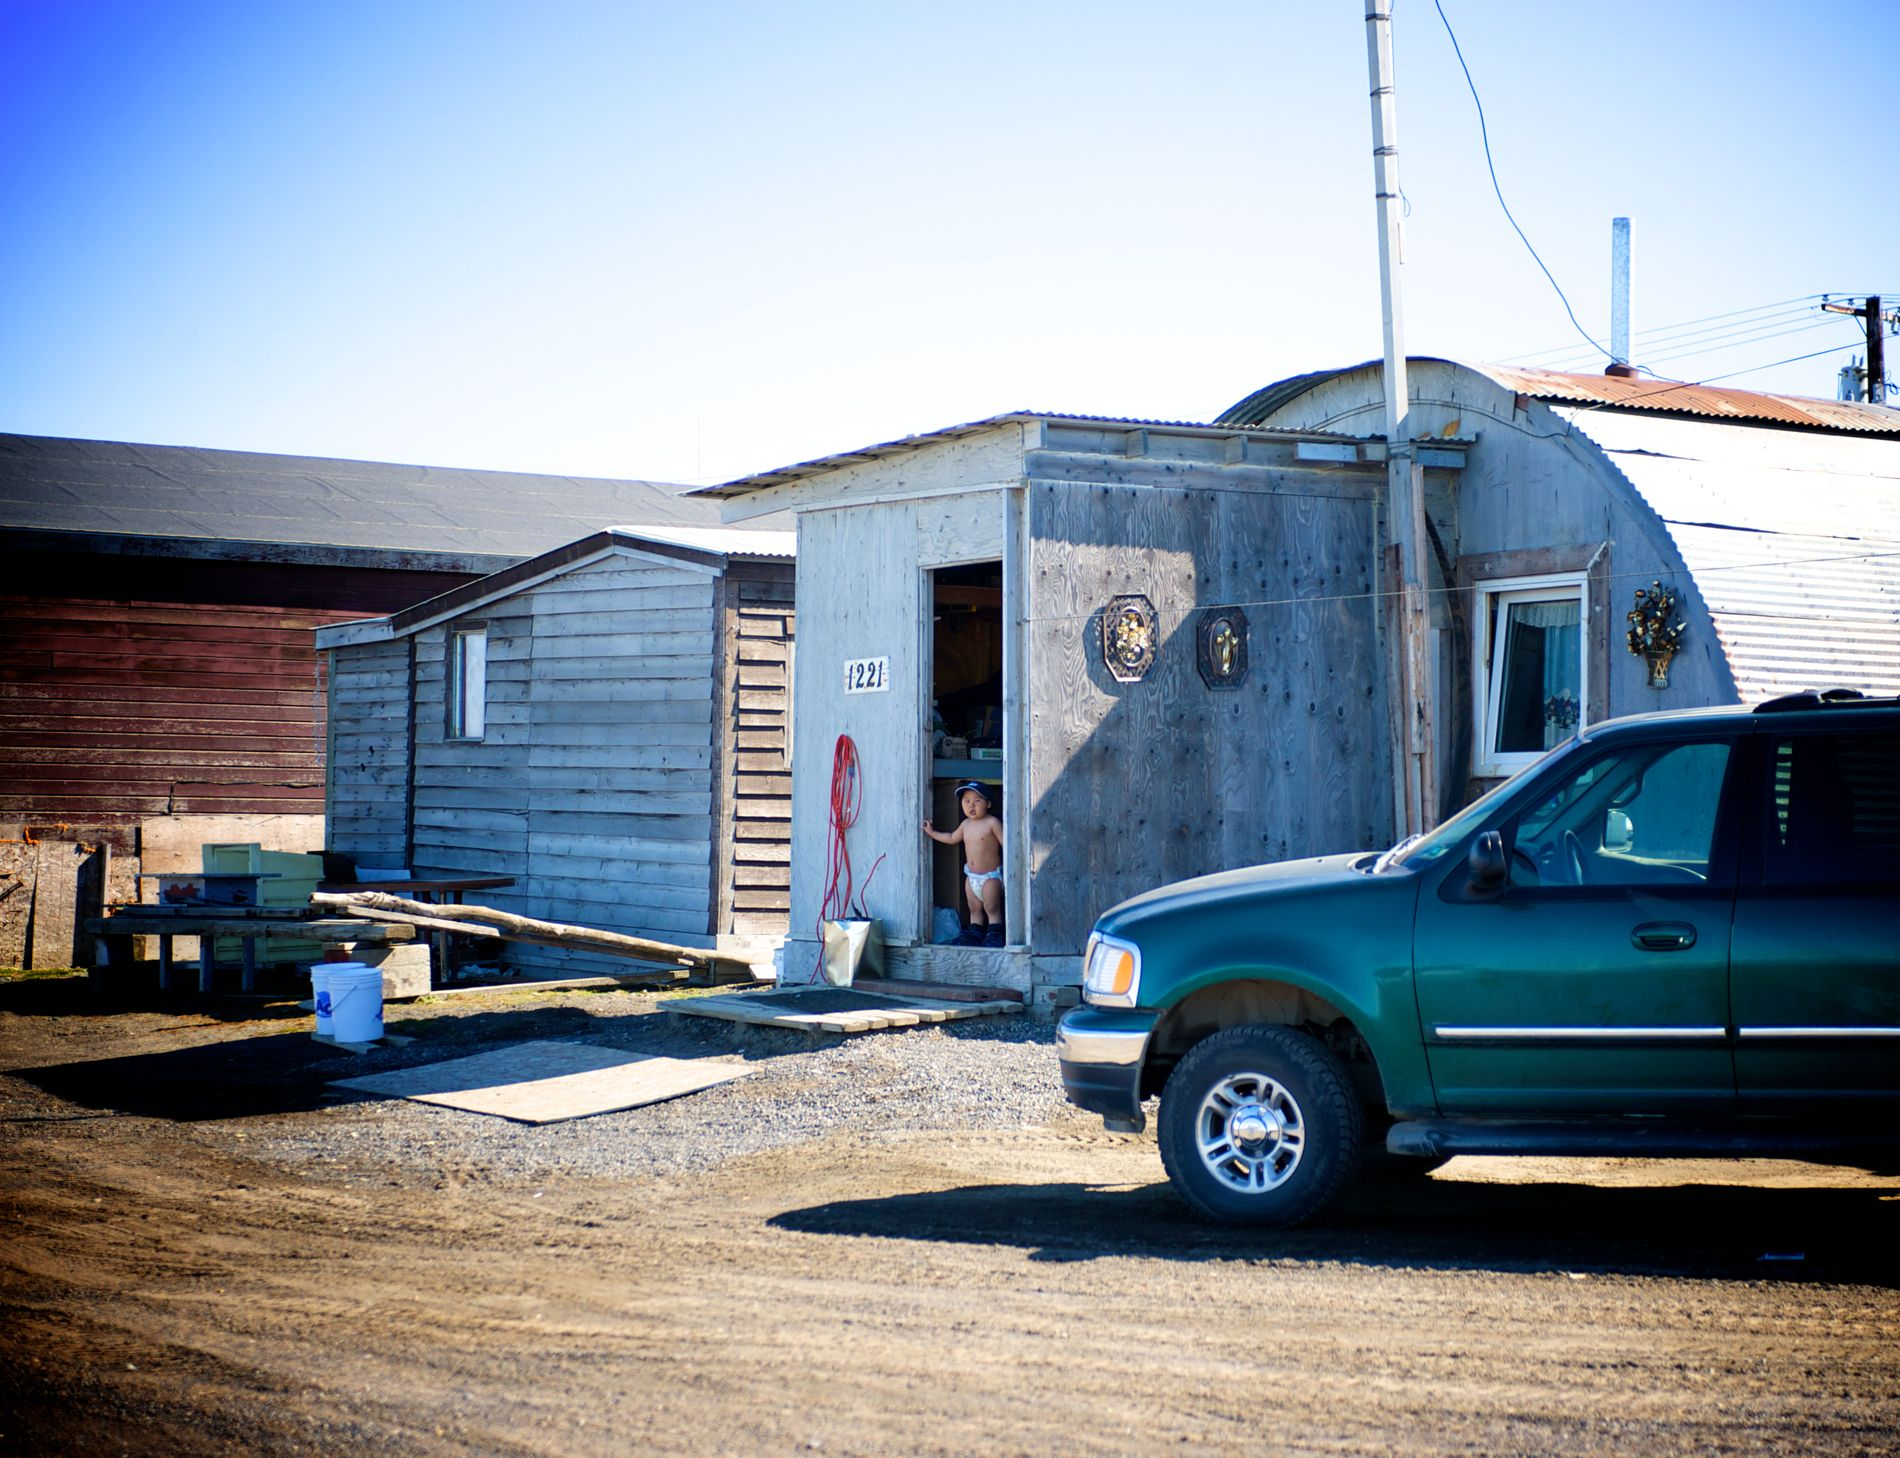 Photographer Pernille Westh   Barrow, Alaska, the northernmost city in the US. A moment from my ongoing project about the North · Get my 7 FREE basic photography tips - you need to know! http://pw5383.wixsite.com/free-photo-tips